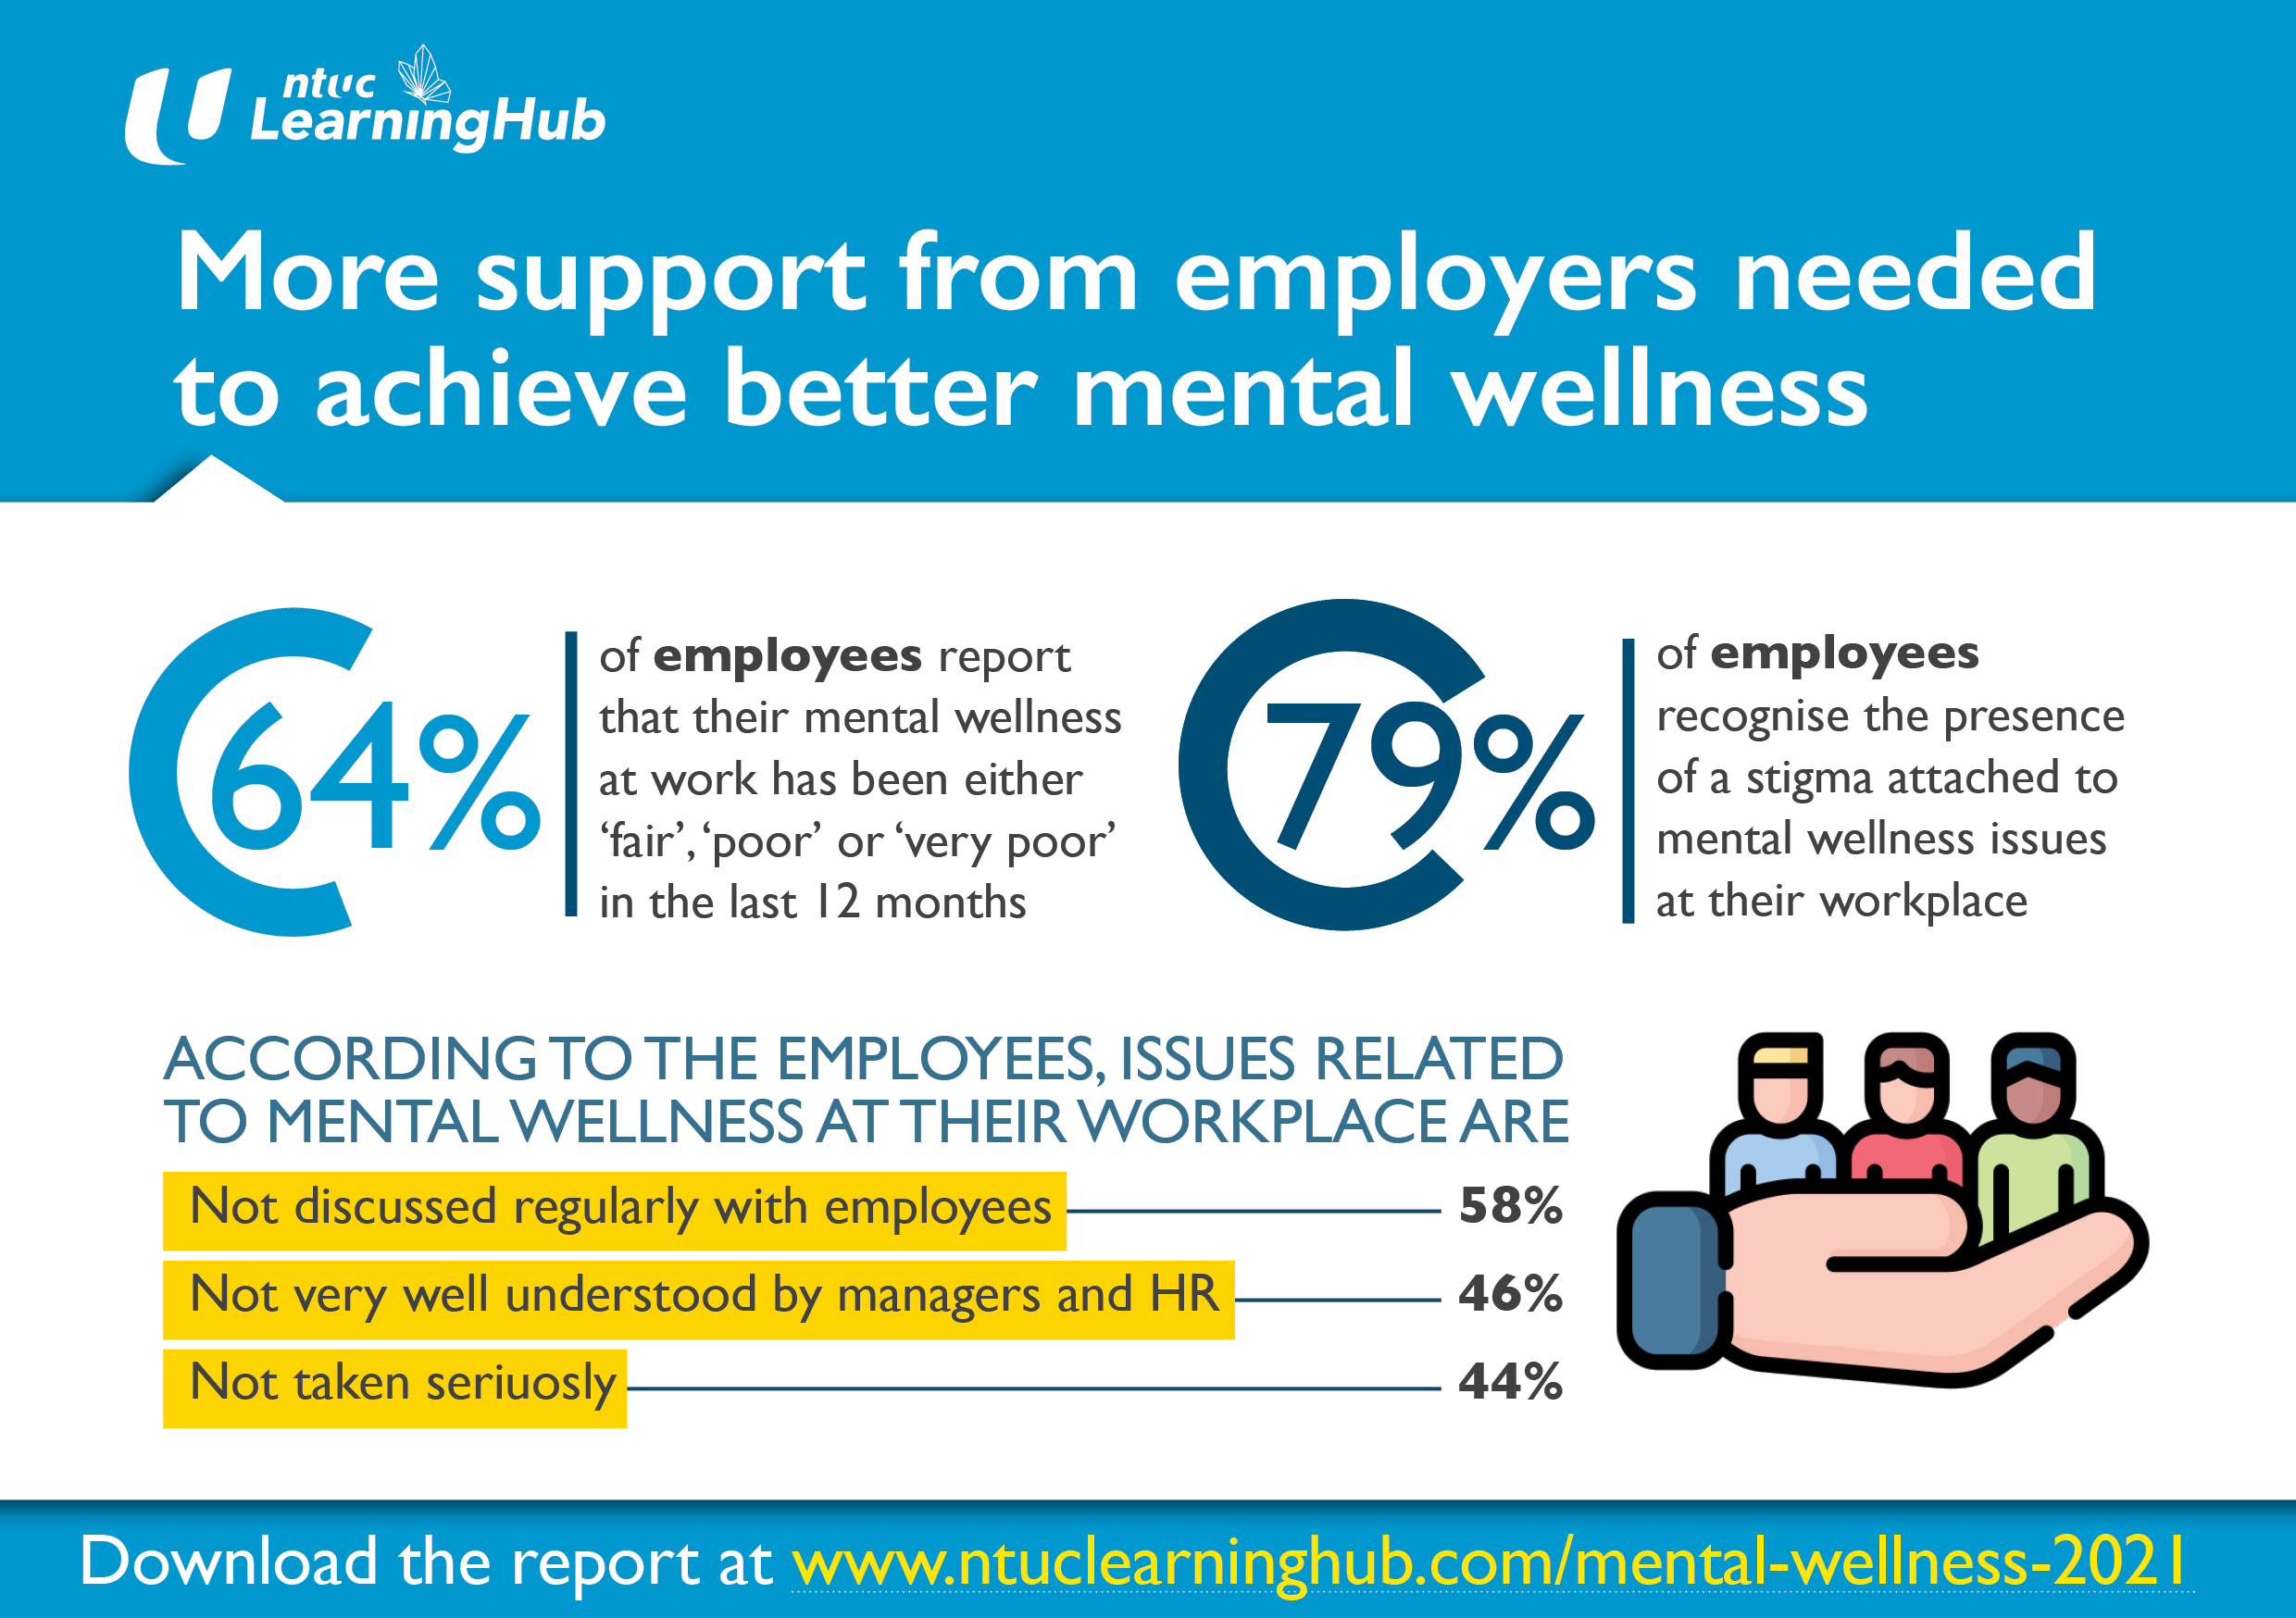 More Support from Employers Needed to Achieve Better Mental Wellness